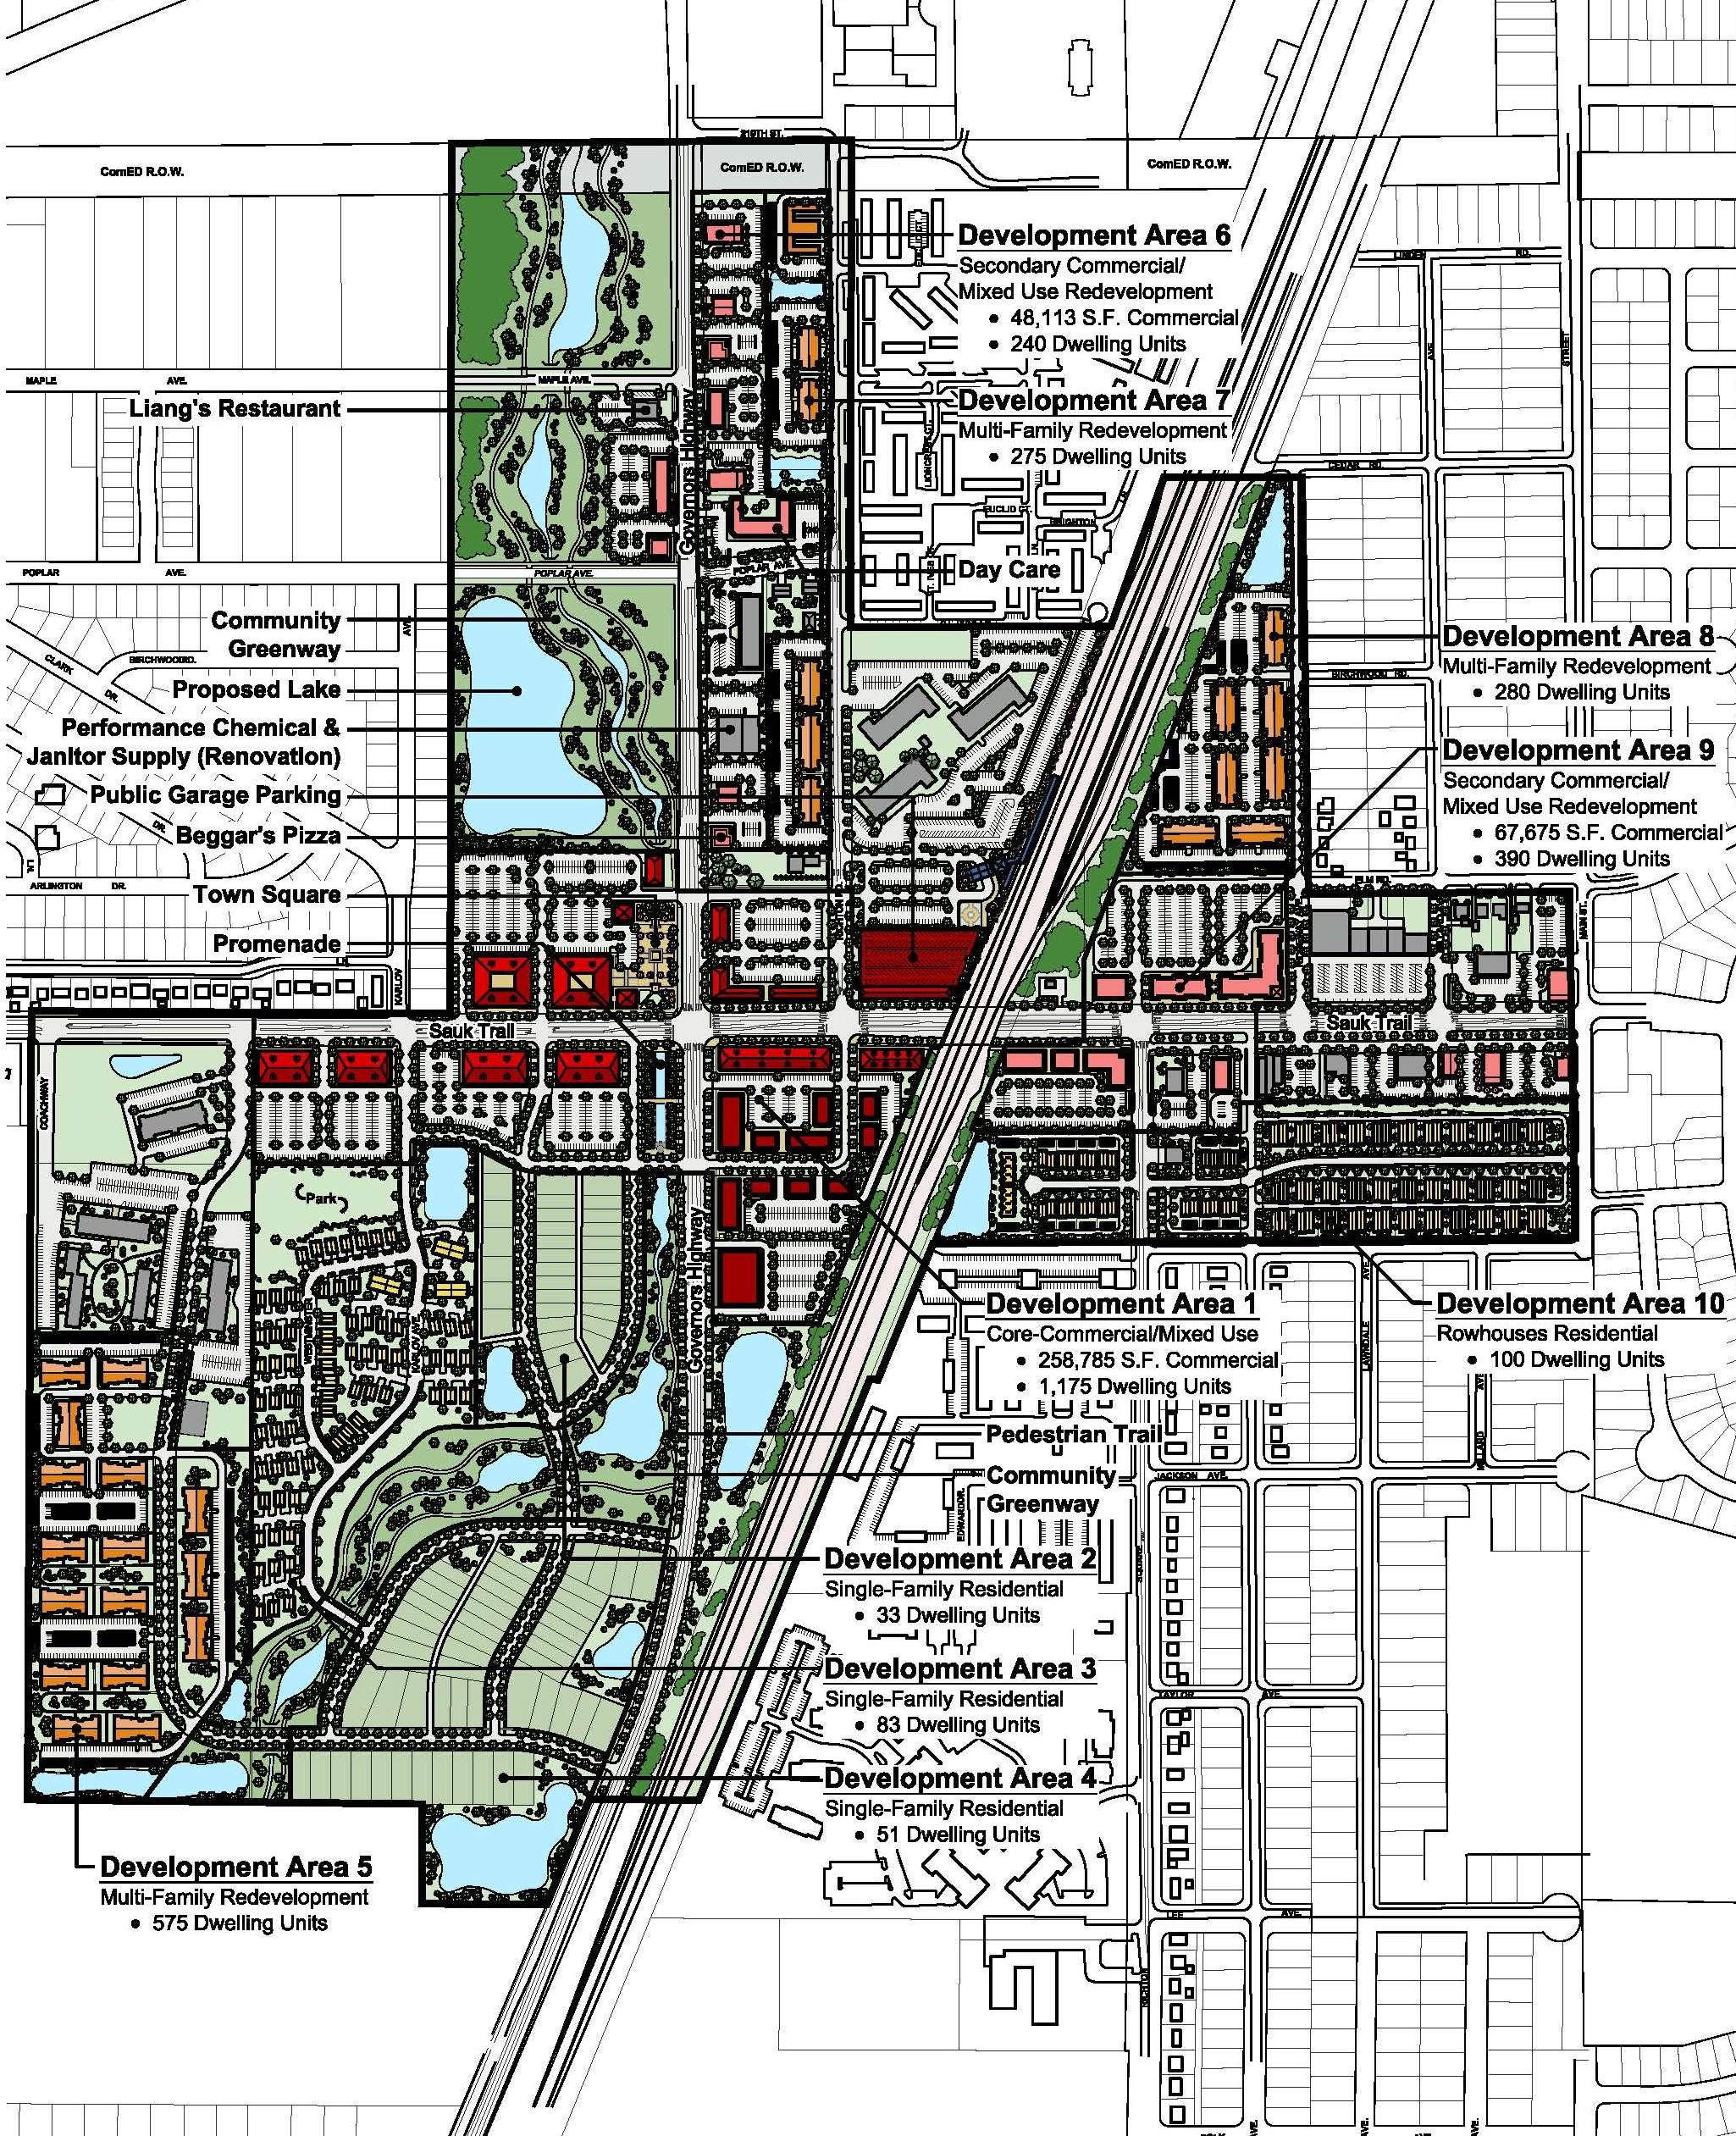 Town Center Illustrative Site Plan - 2 cut